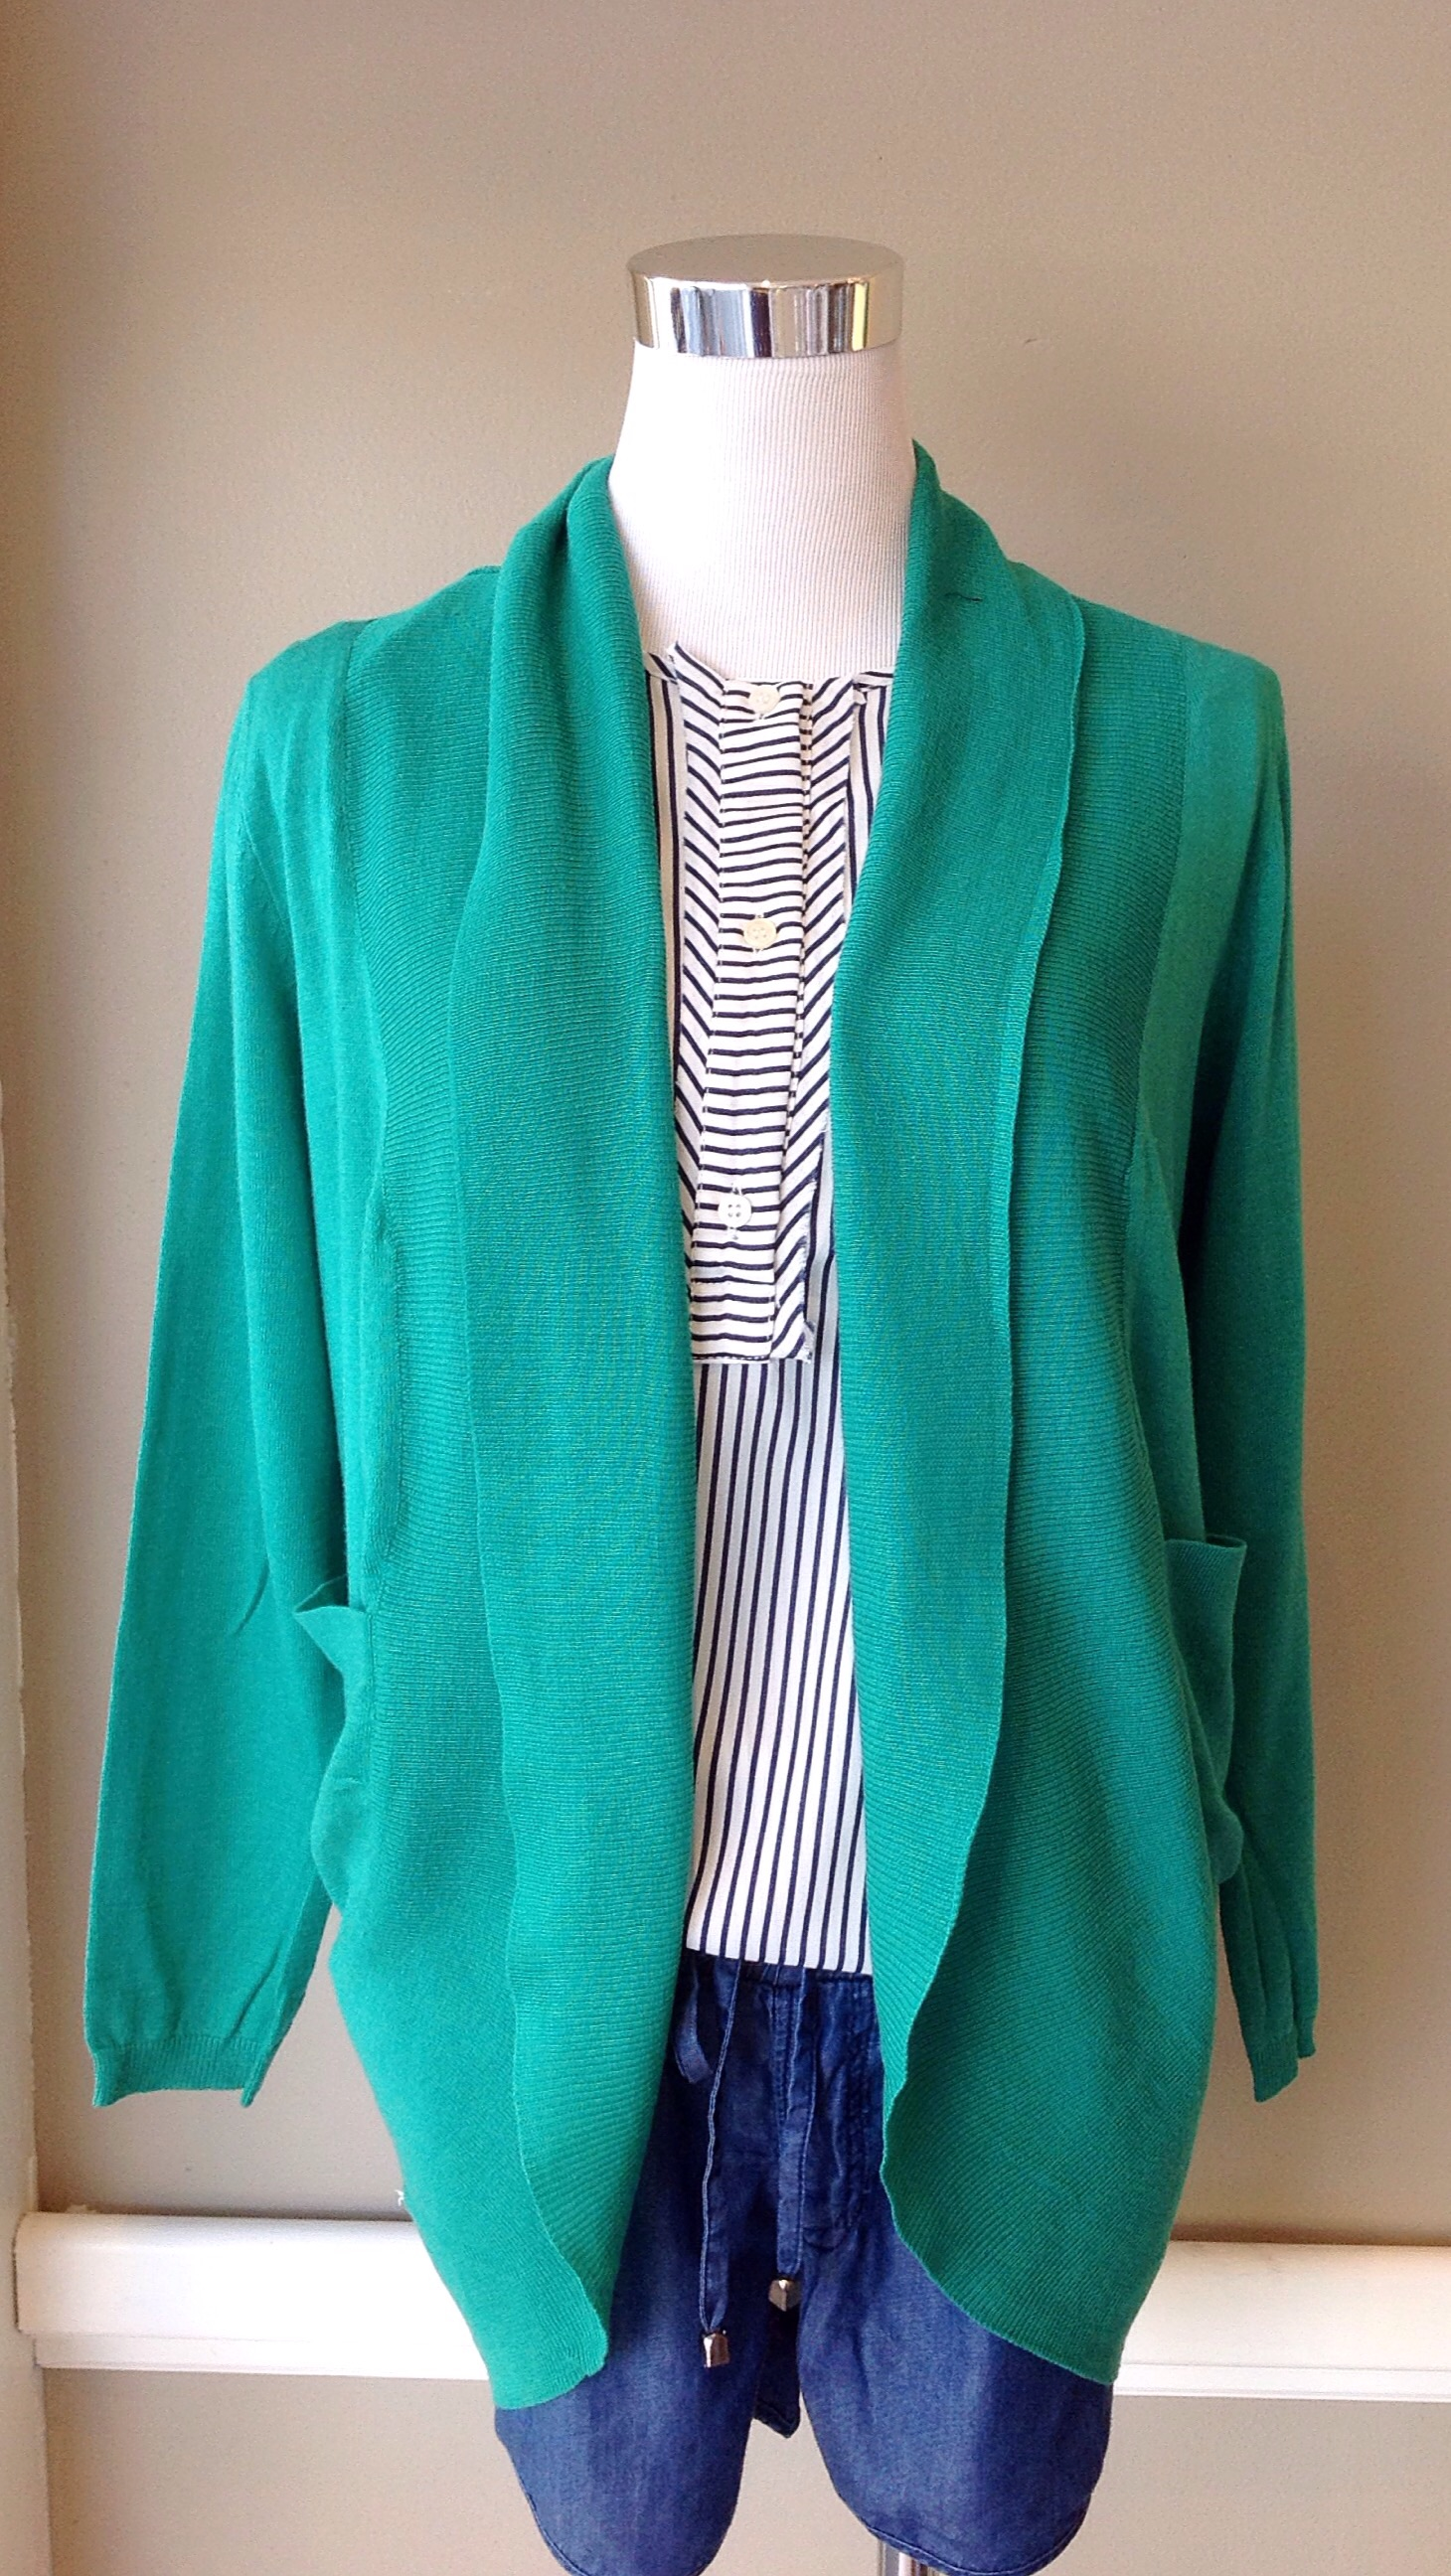 Cotton shawl collar cardigan with side pockets in emerald, $28